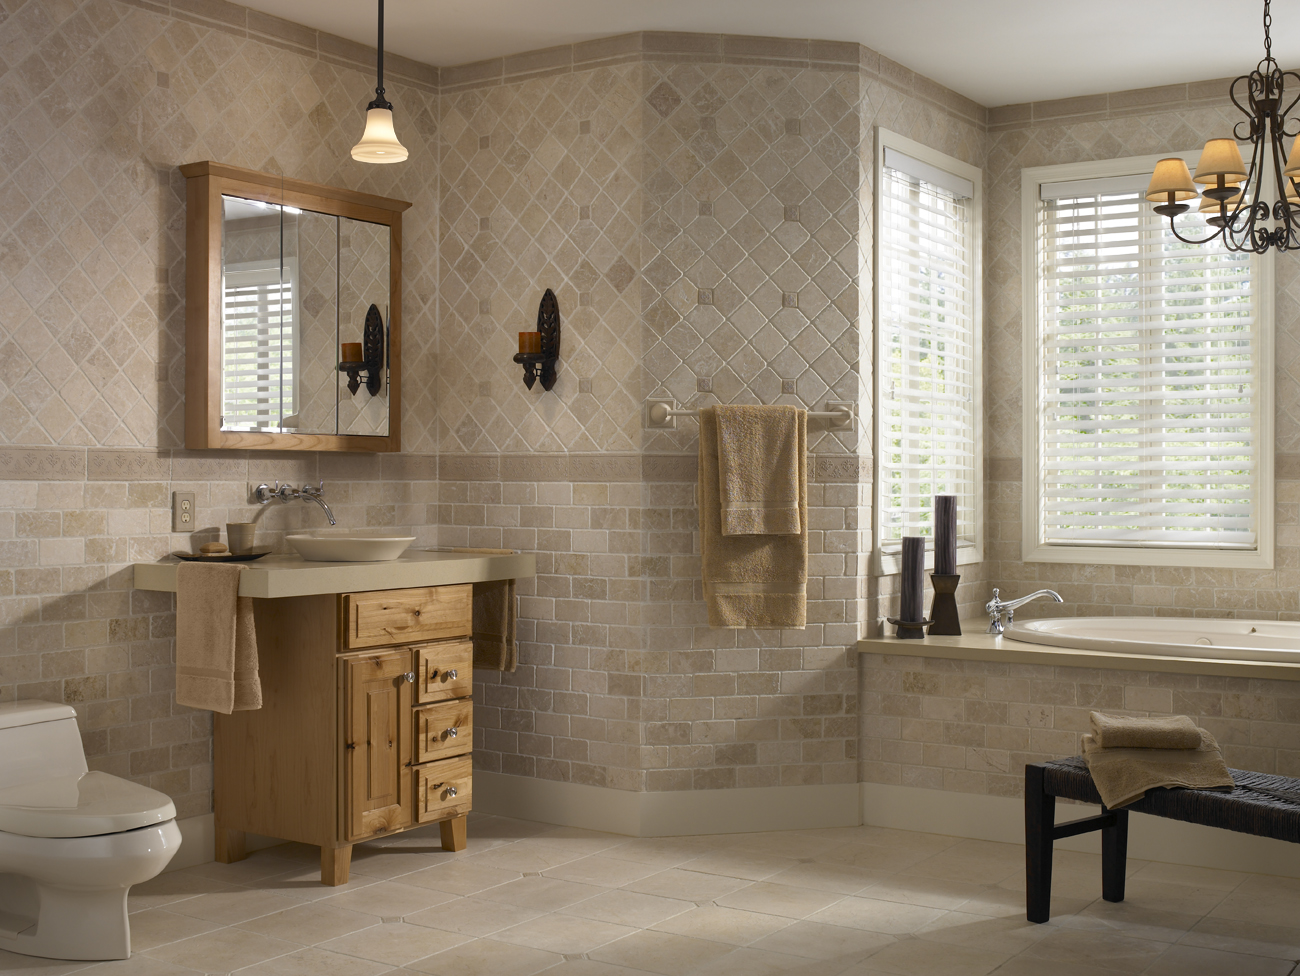 39 cool pictures and ideas of limestone bathroom tiles 2020